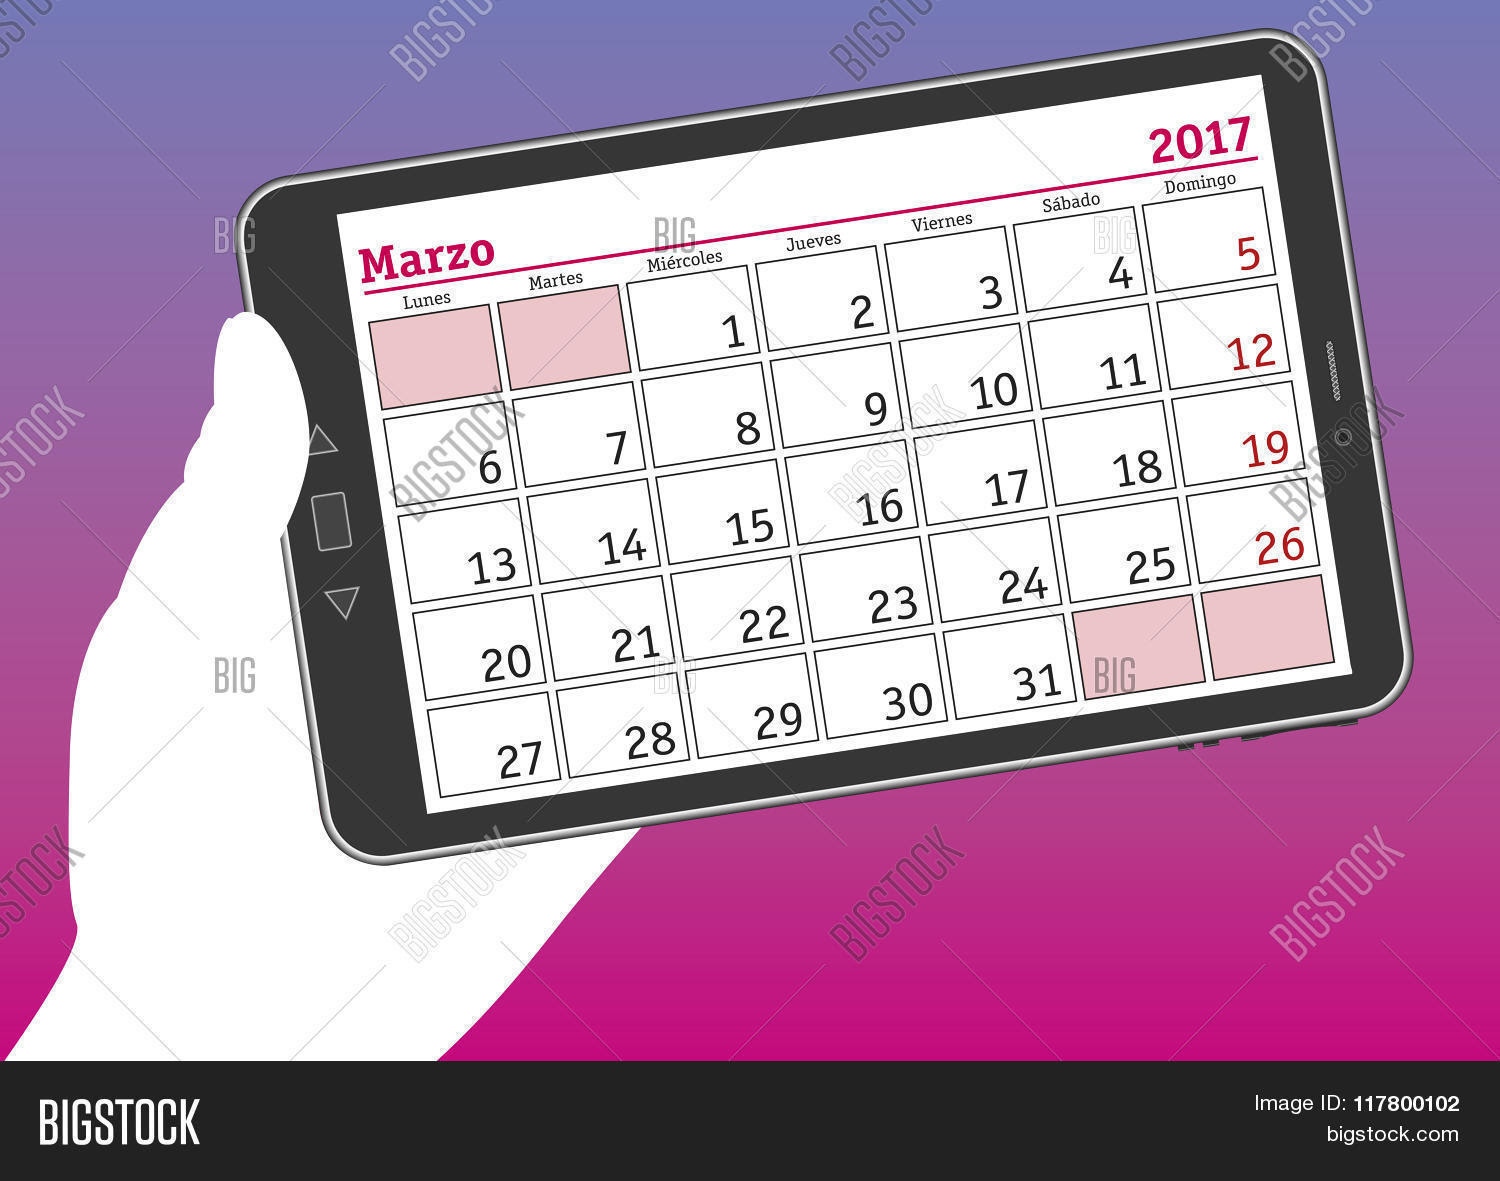 Tablet Pc With A Calendar Sheet Of March 2017 In Spanish Stock ...